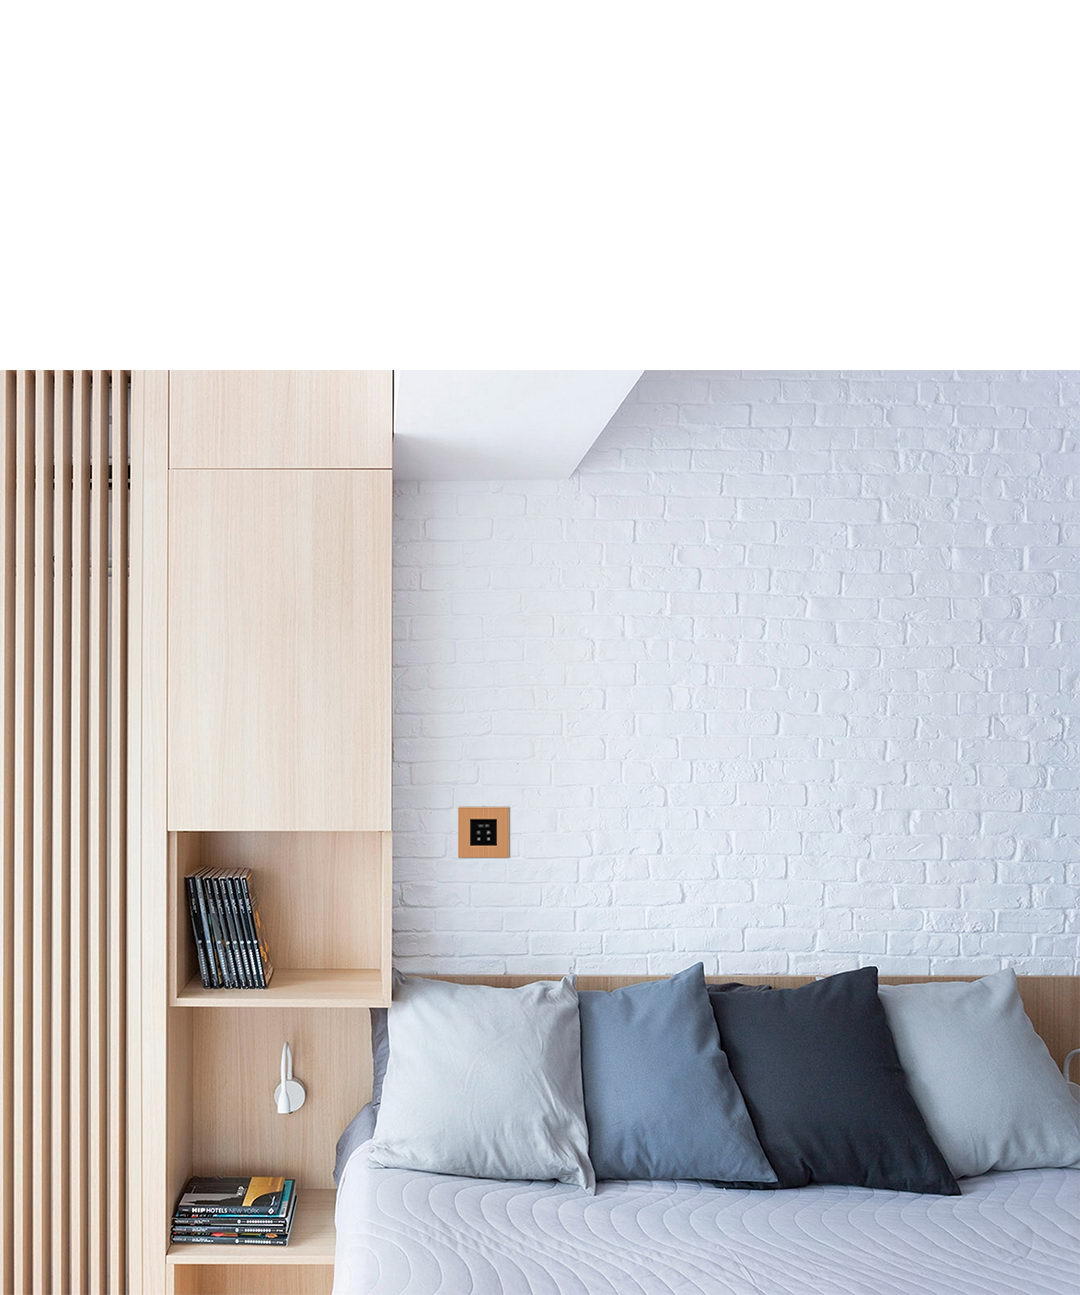 Smart wall touch panel – Terre series from TIS control